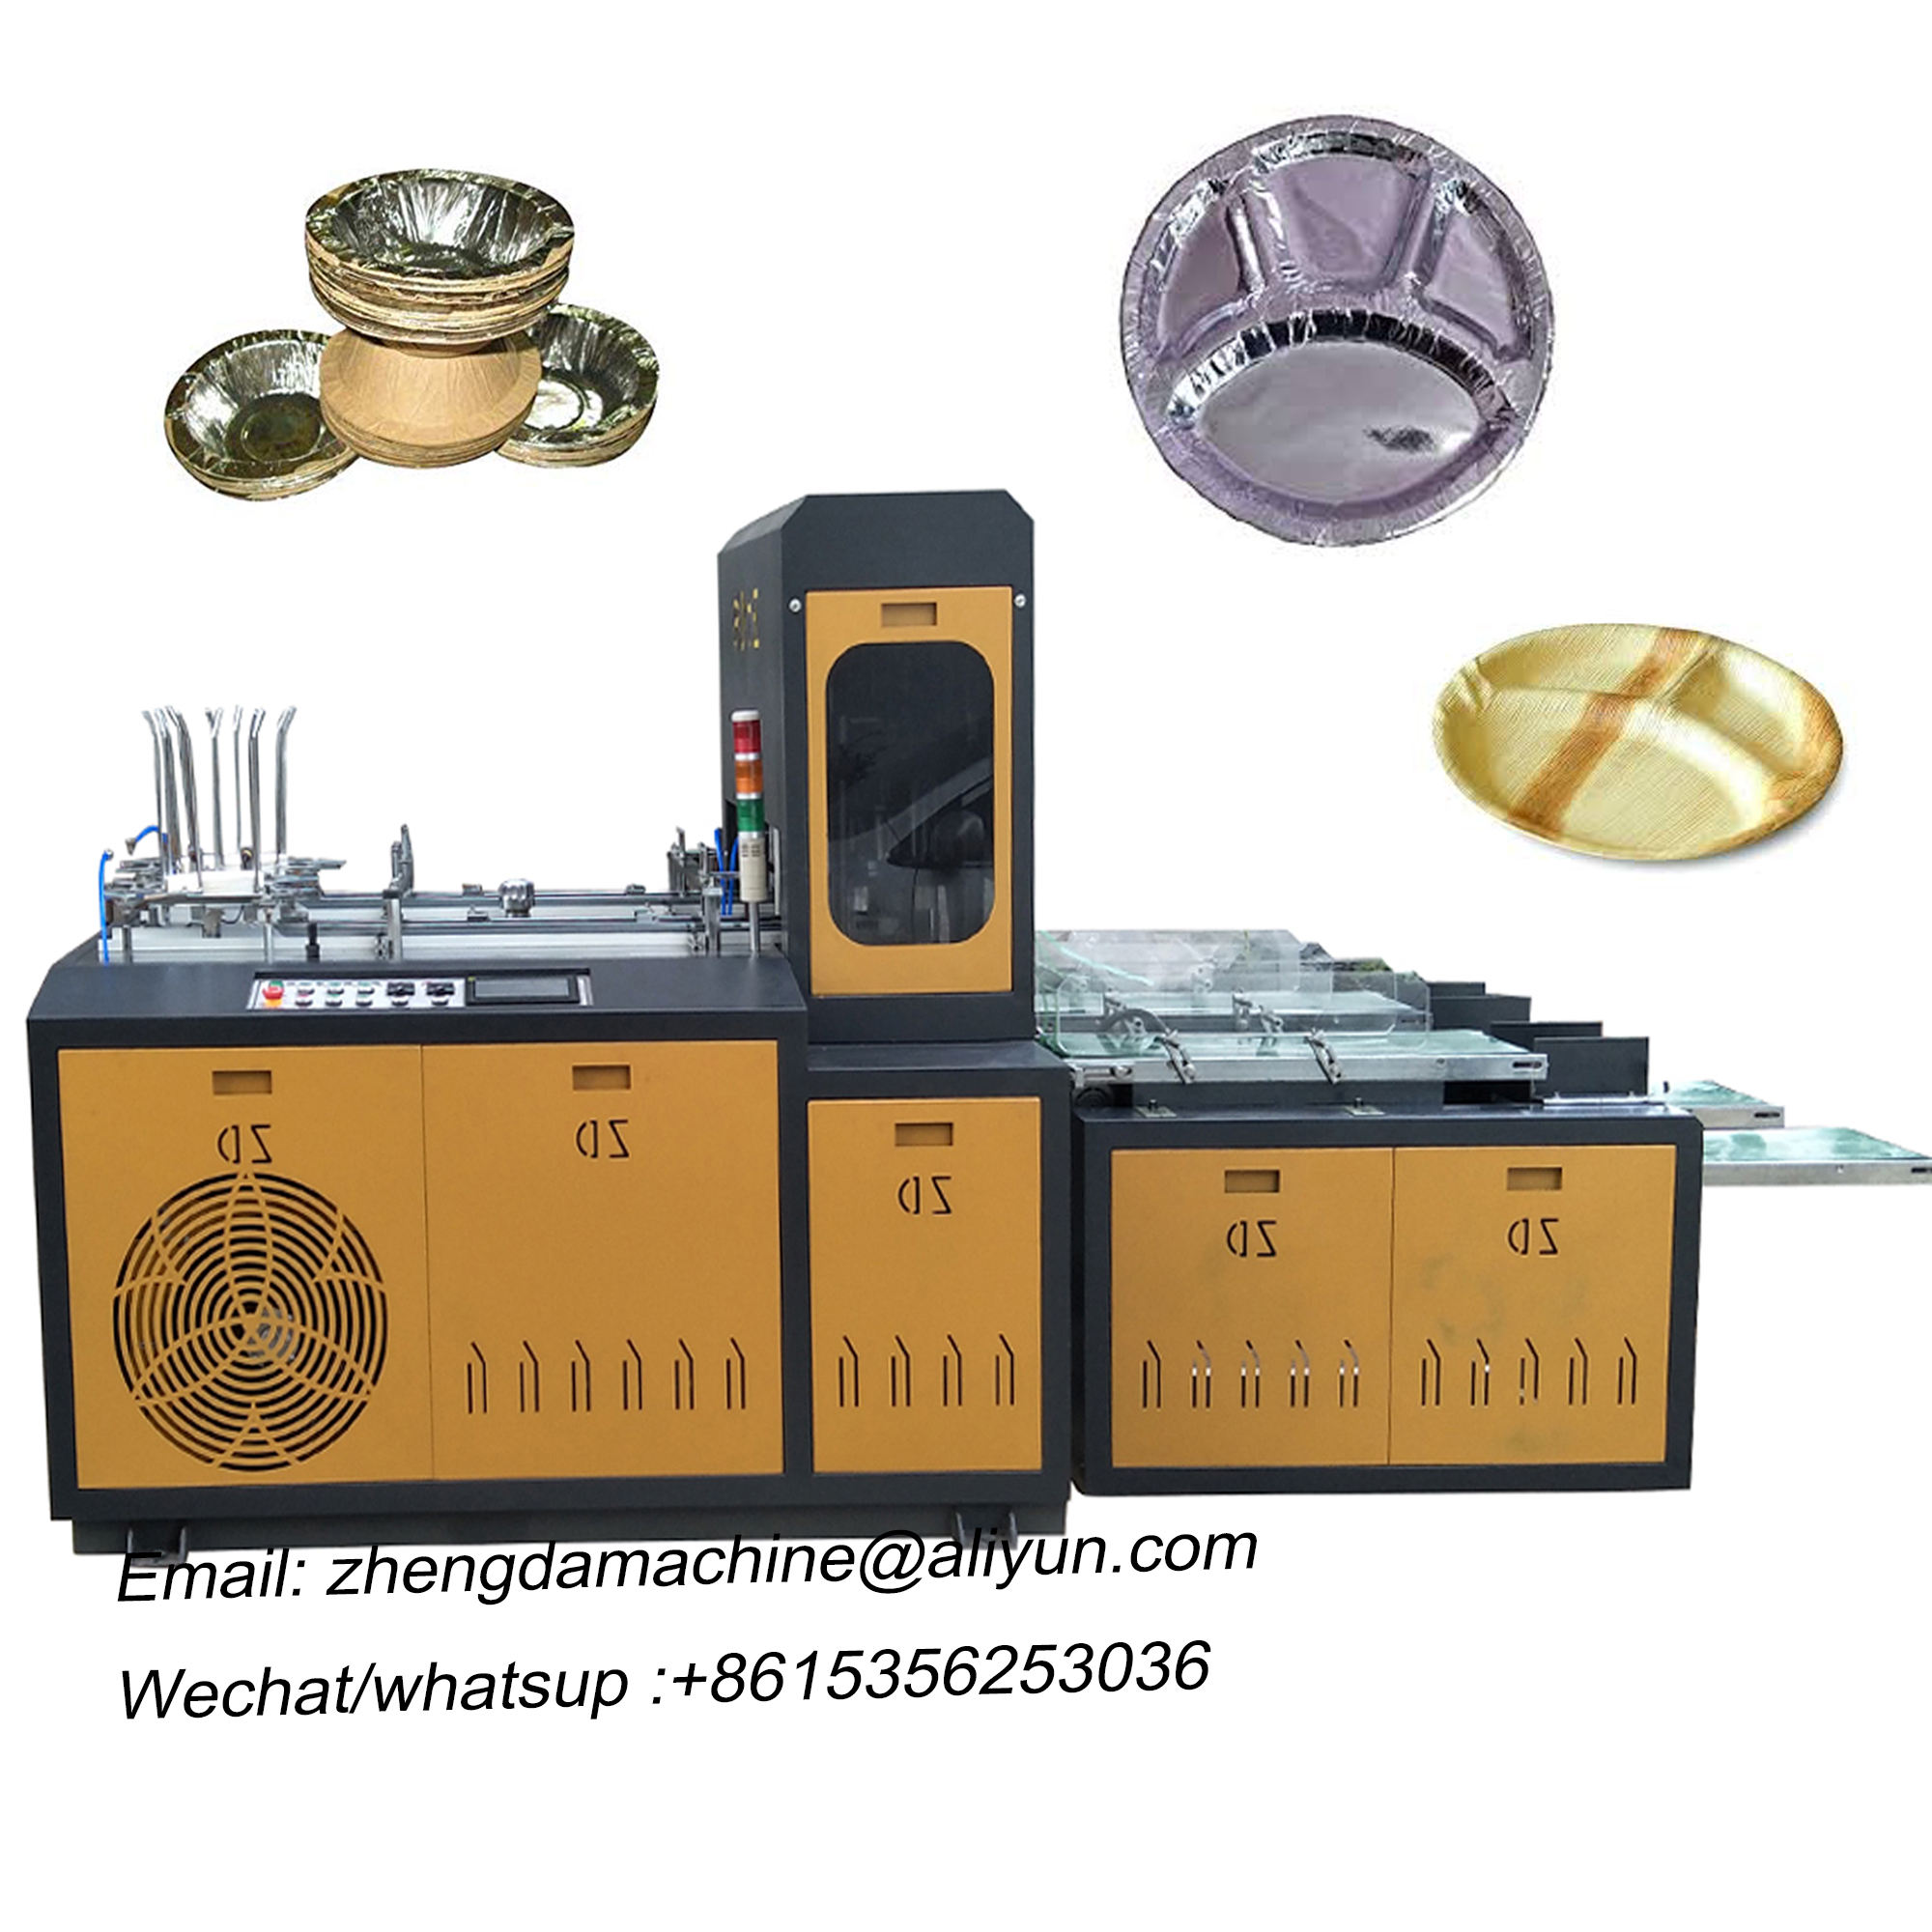 full aota pattal dona bowl /silver paper dish making machine in india